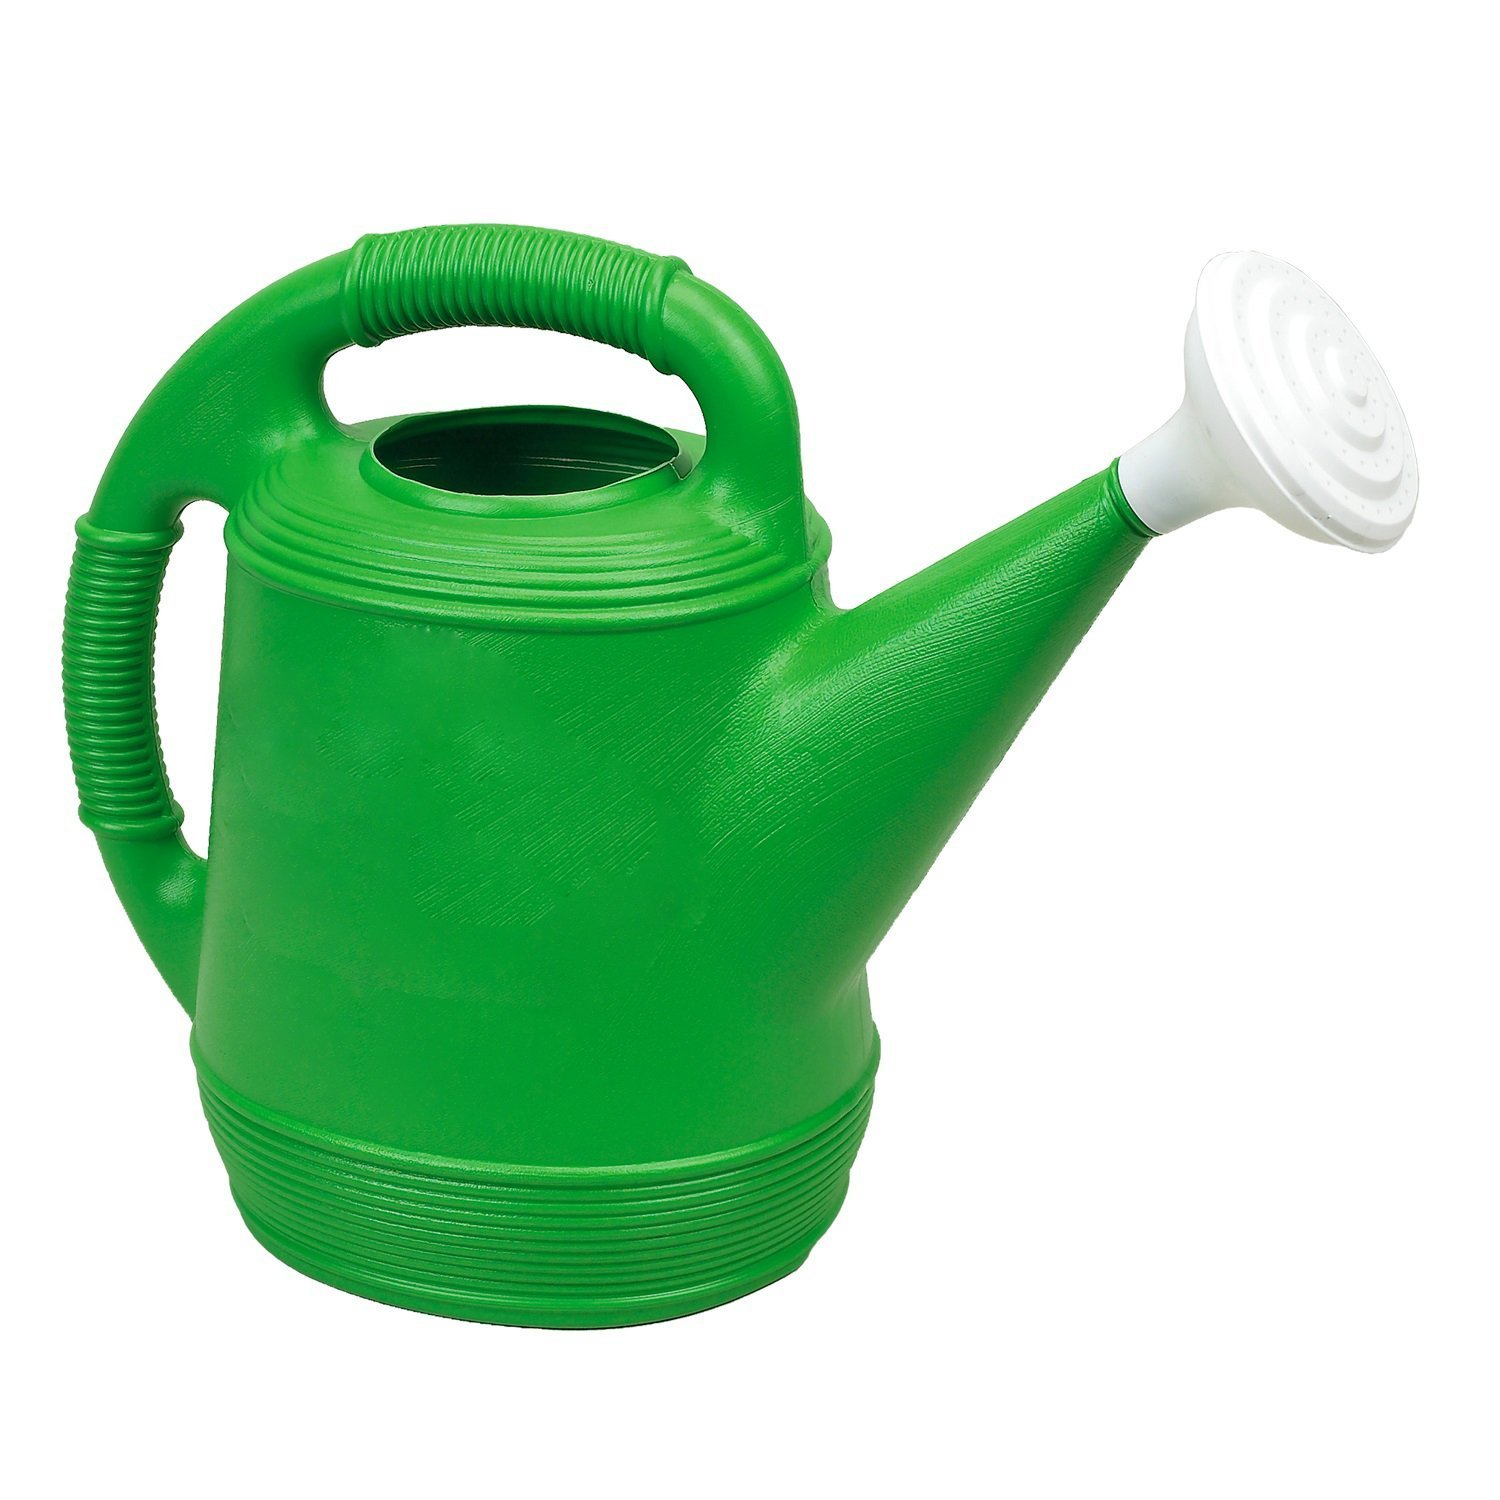 Missry Associates Misco Plastic Watering Can, 2-Gallon, Lime Green